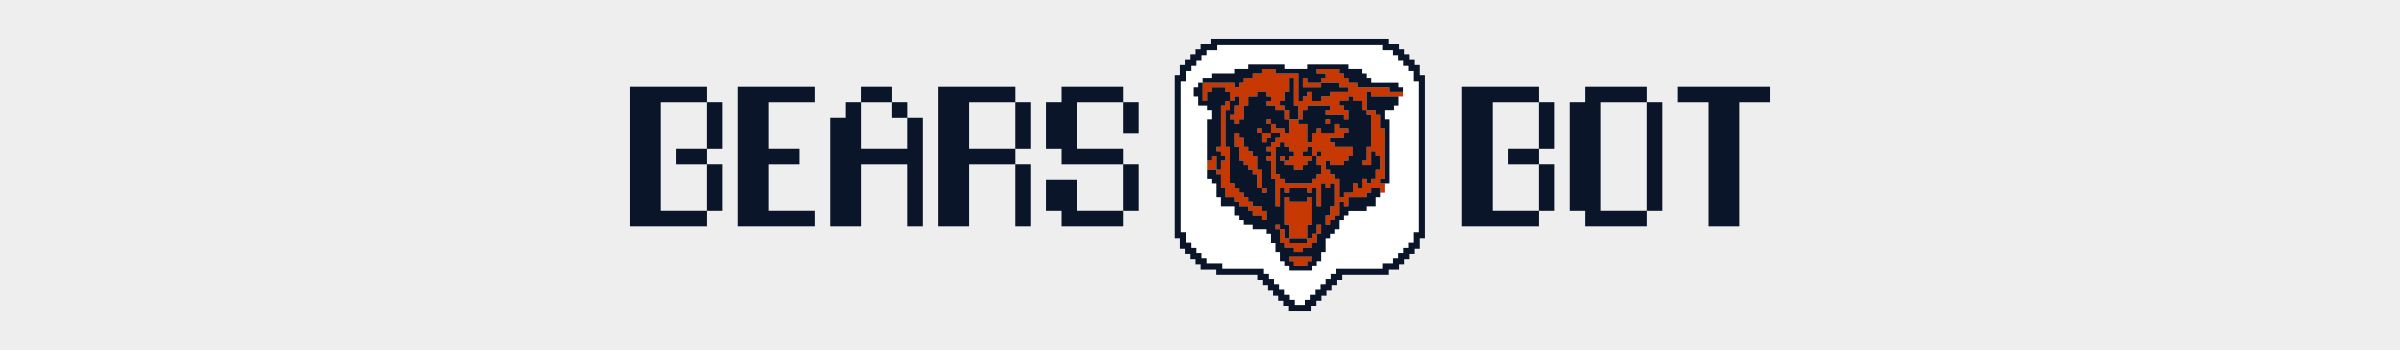 bears_bot_page_header